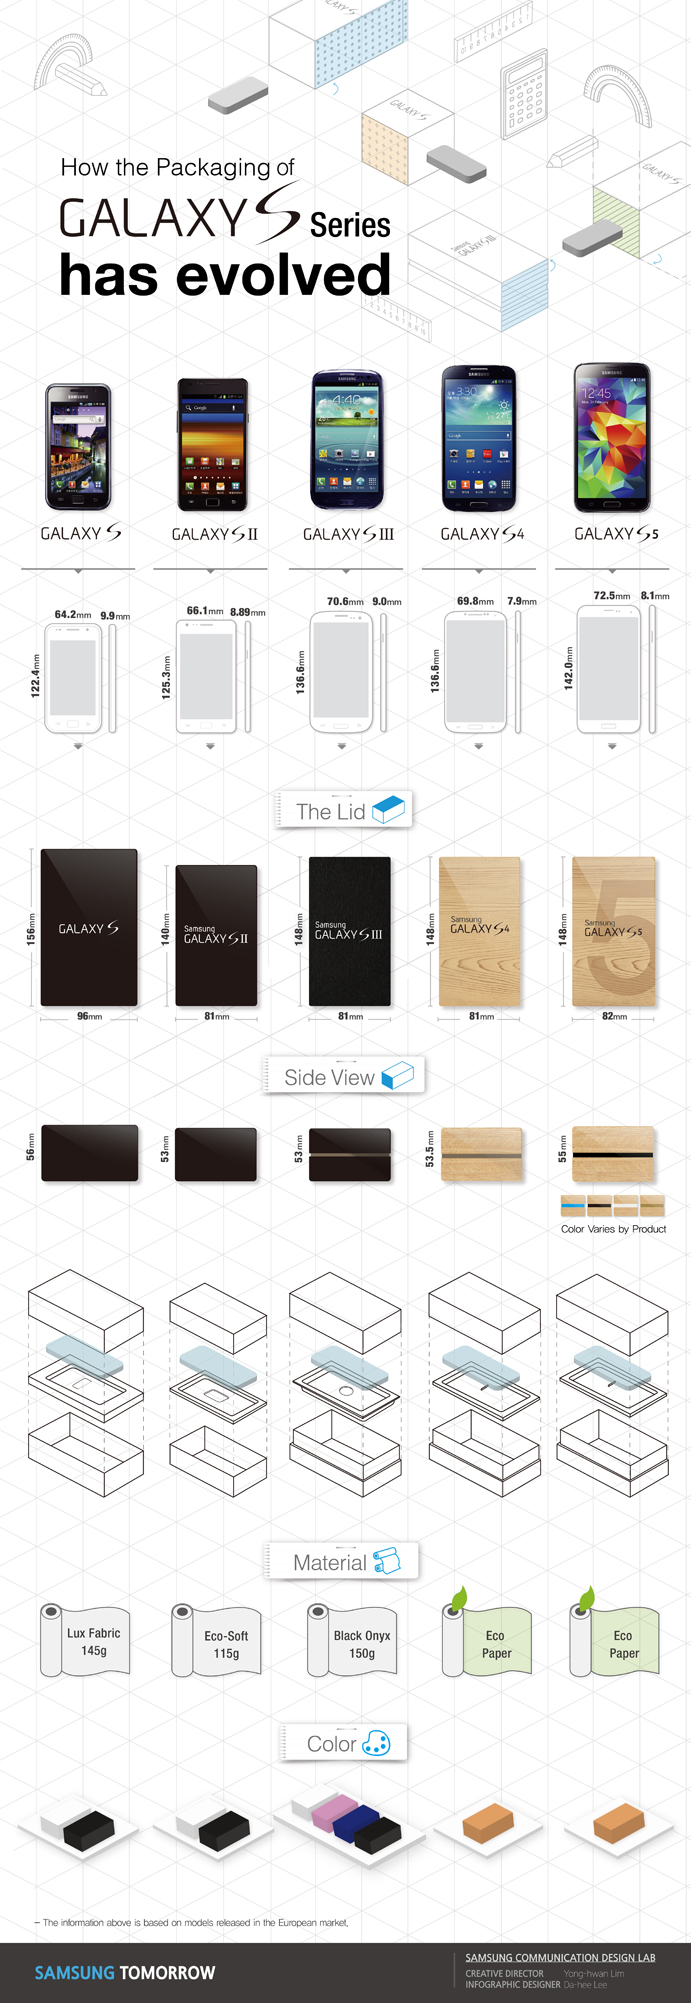 How the Packaging of Galaxy S Series has evolved